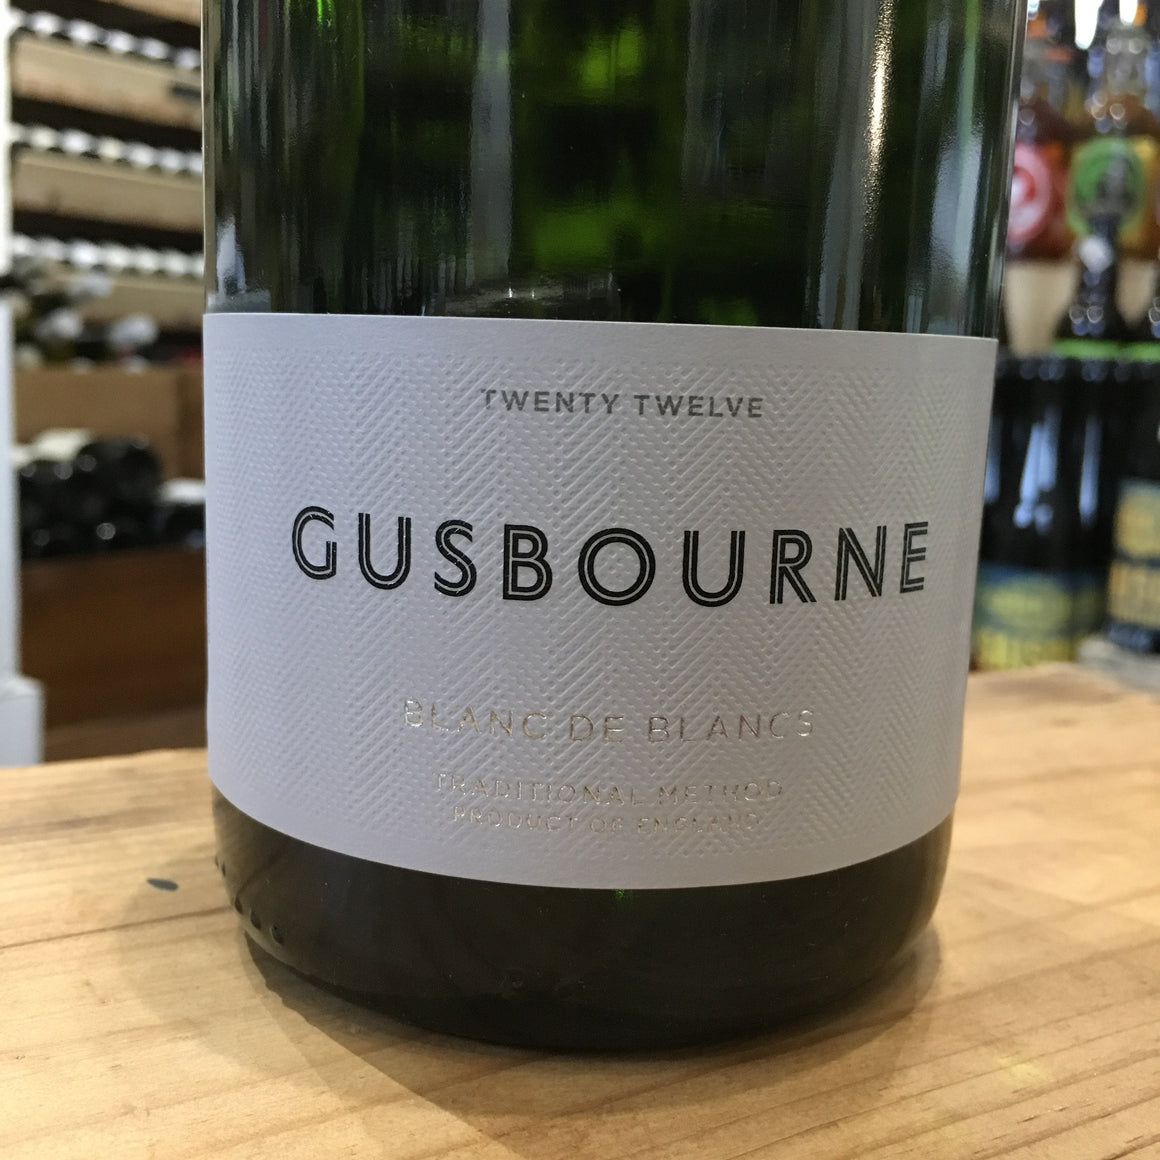 Gusbourne Blanc de Blancs 2012 - Butlers Wine Cellar Brighton